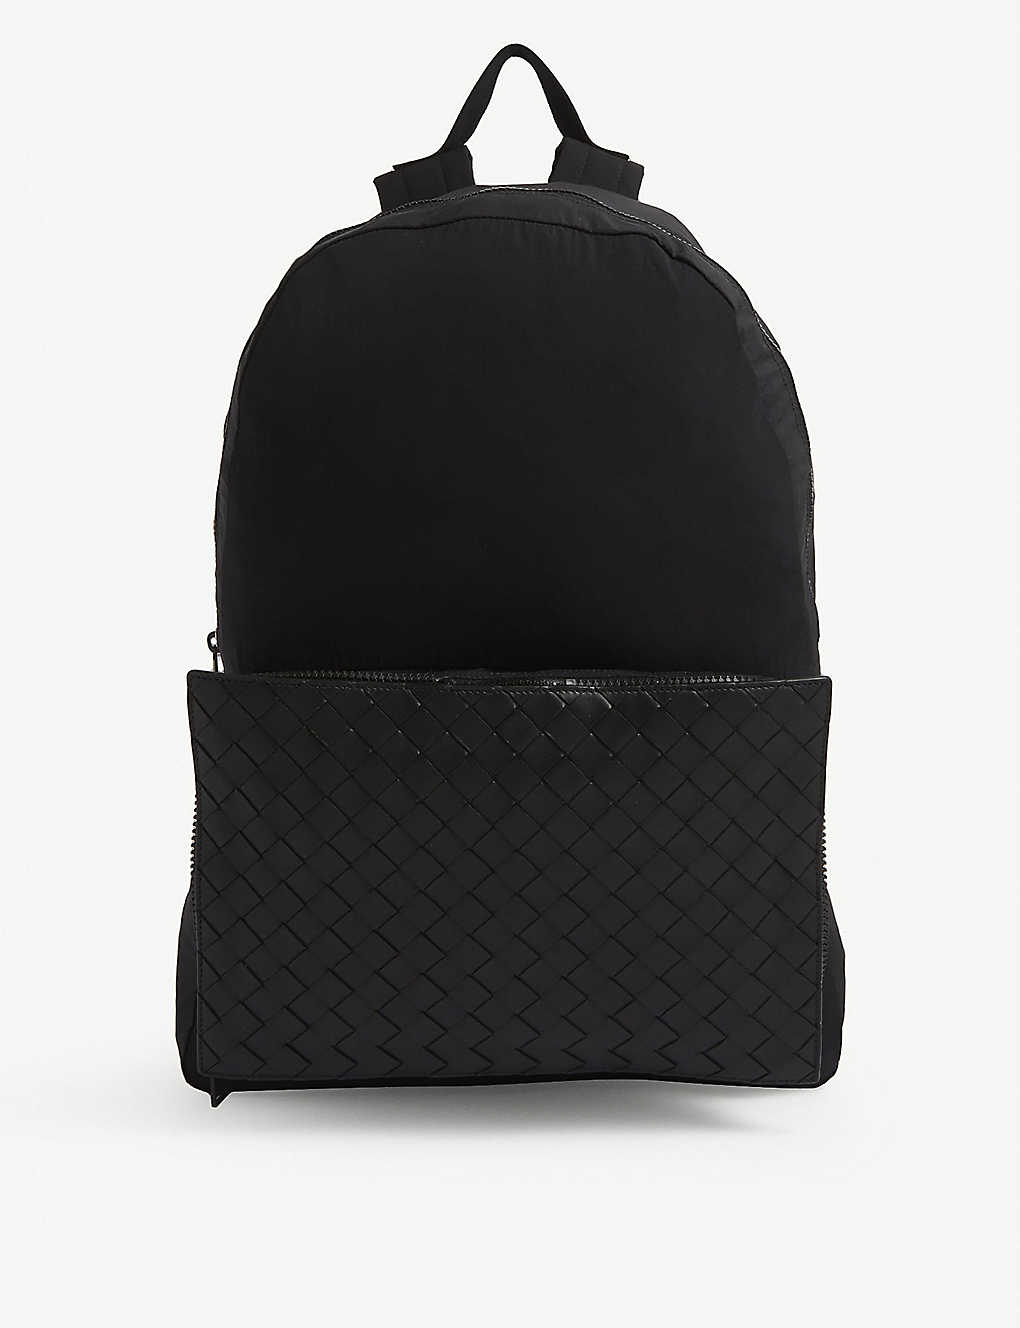 BOTTEGA VENETA: Leather backpack